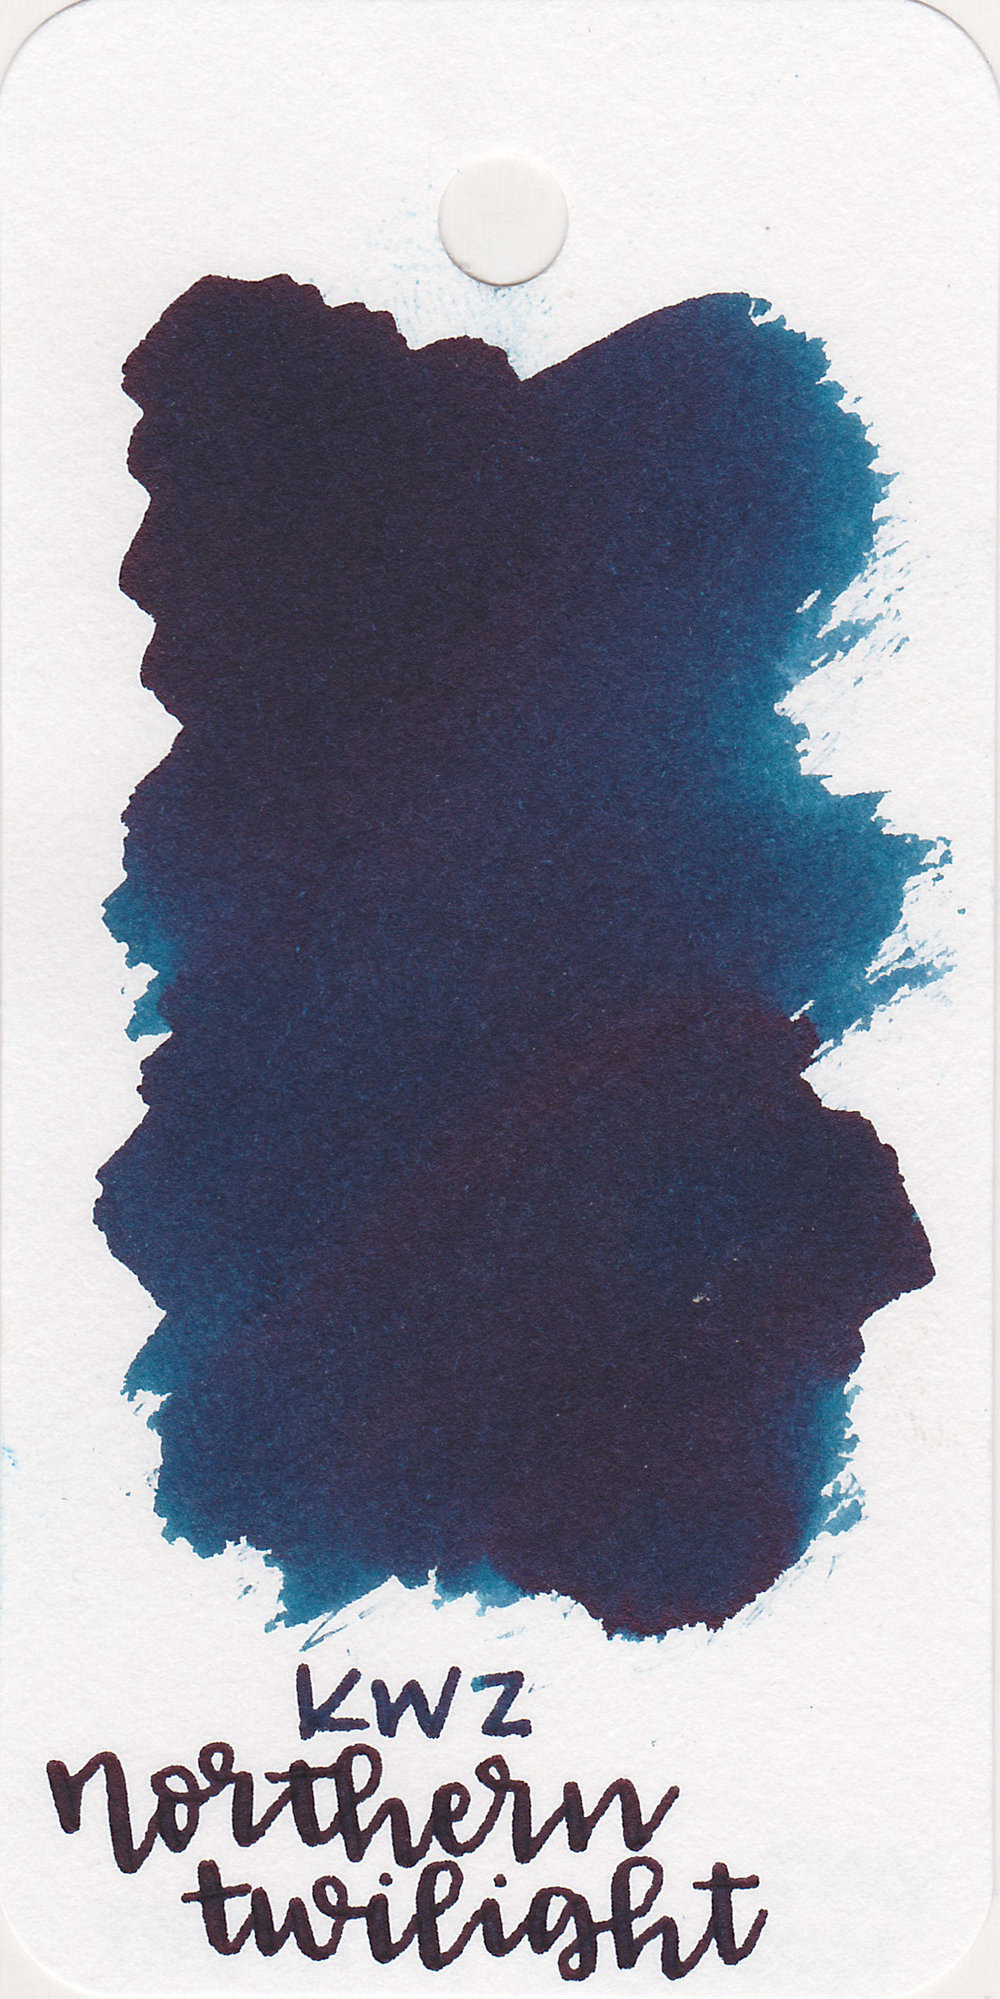 The color: - Northern Twilight is a dark blue with just a hint of green.